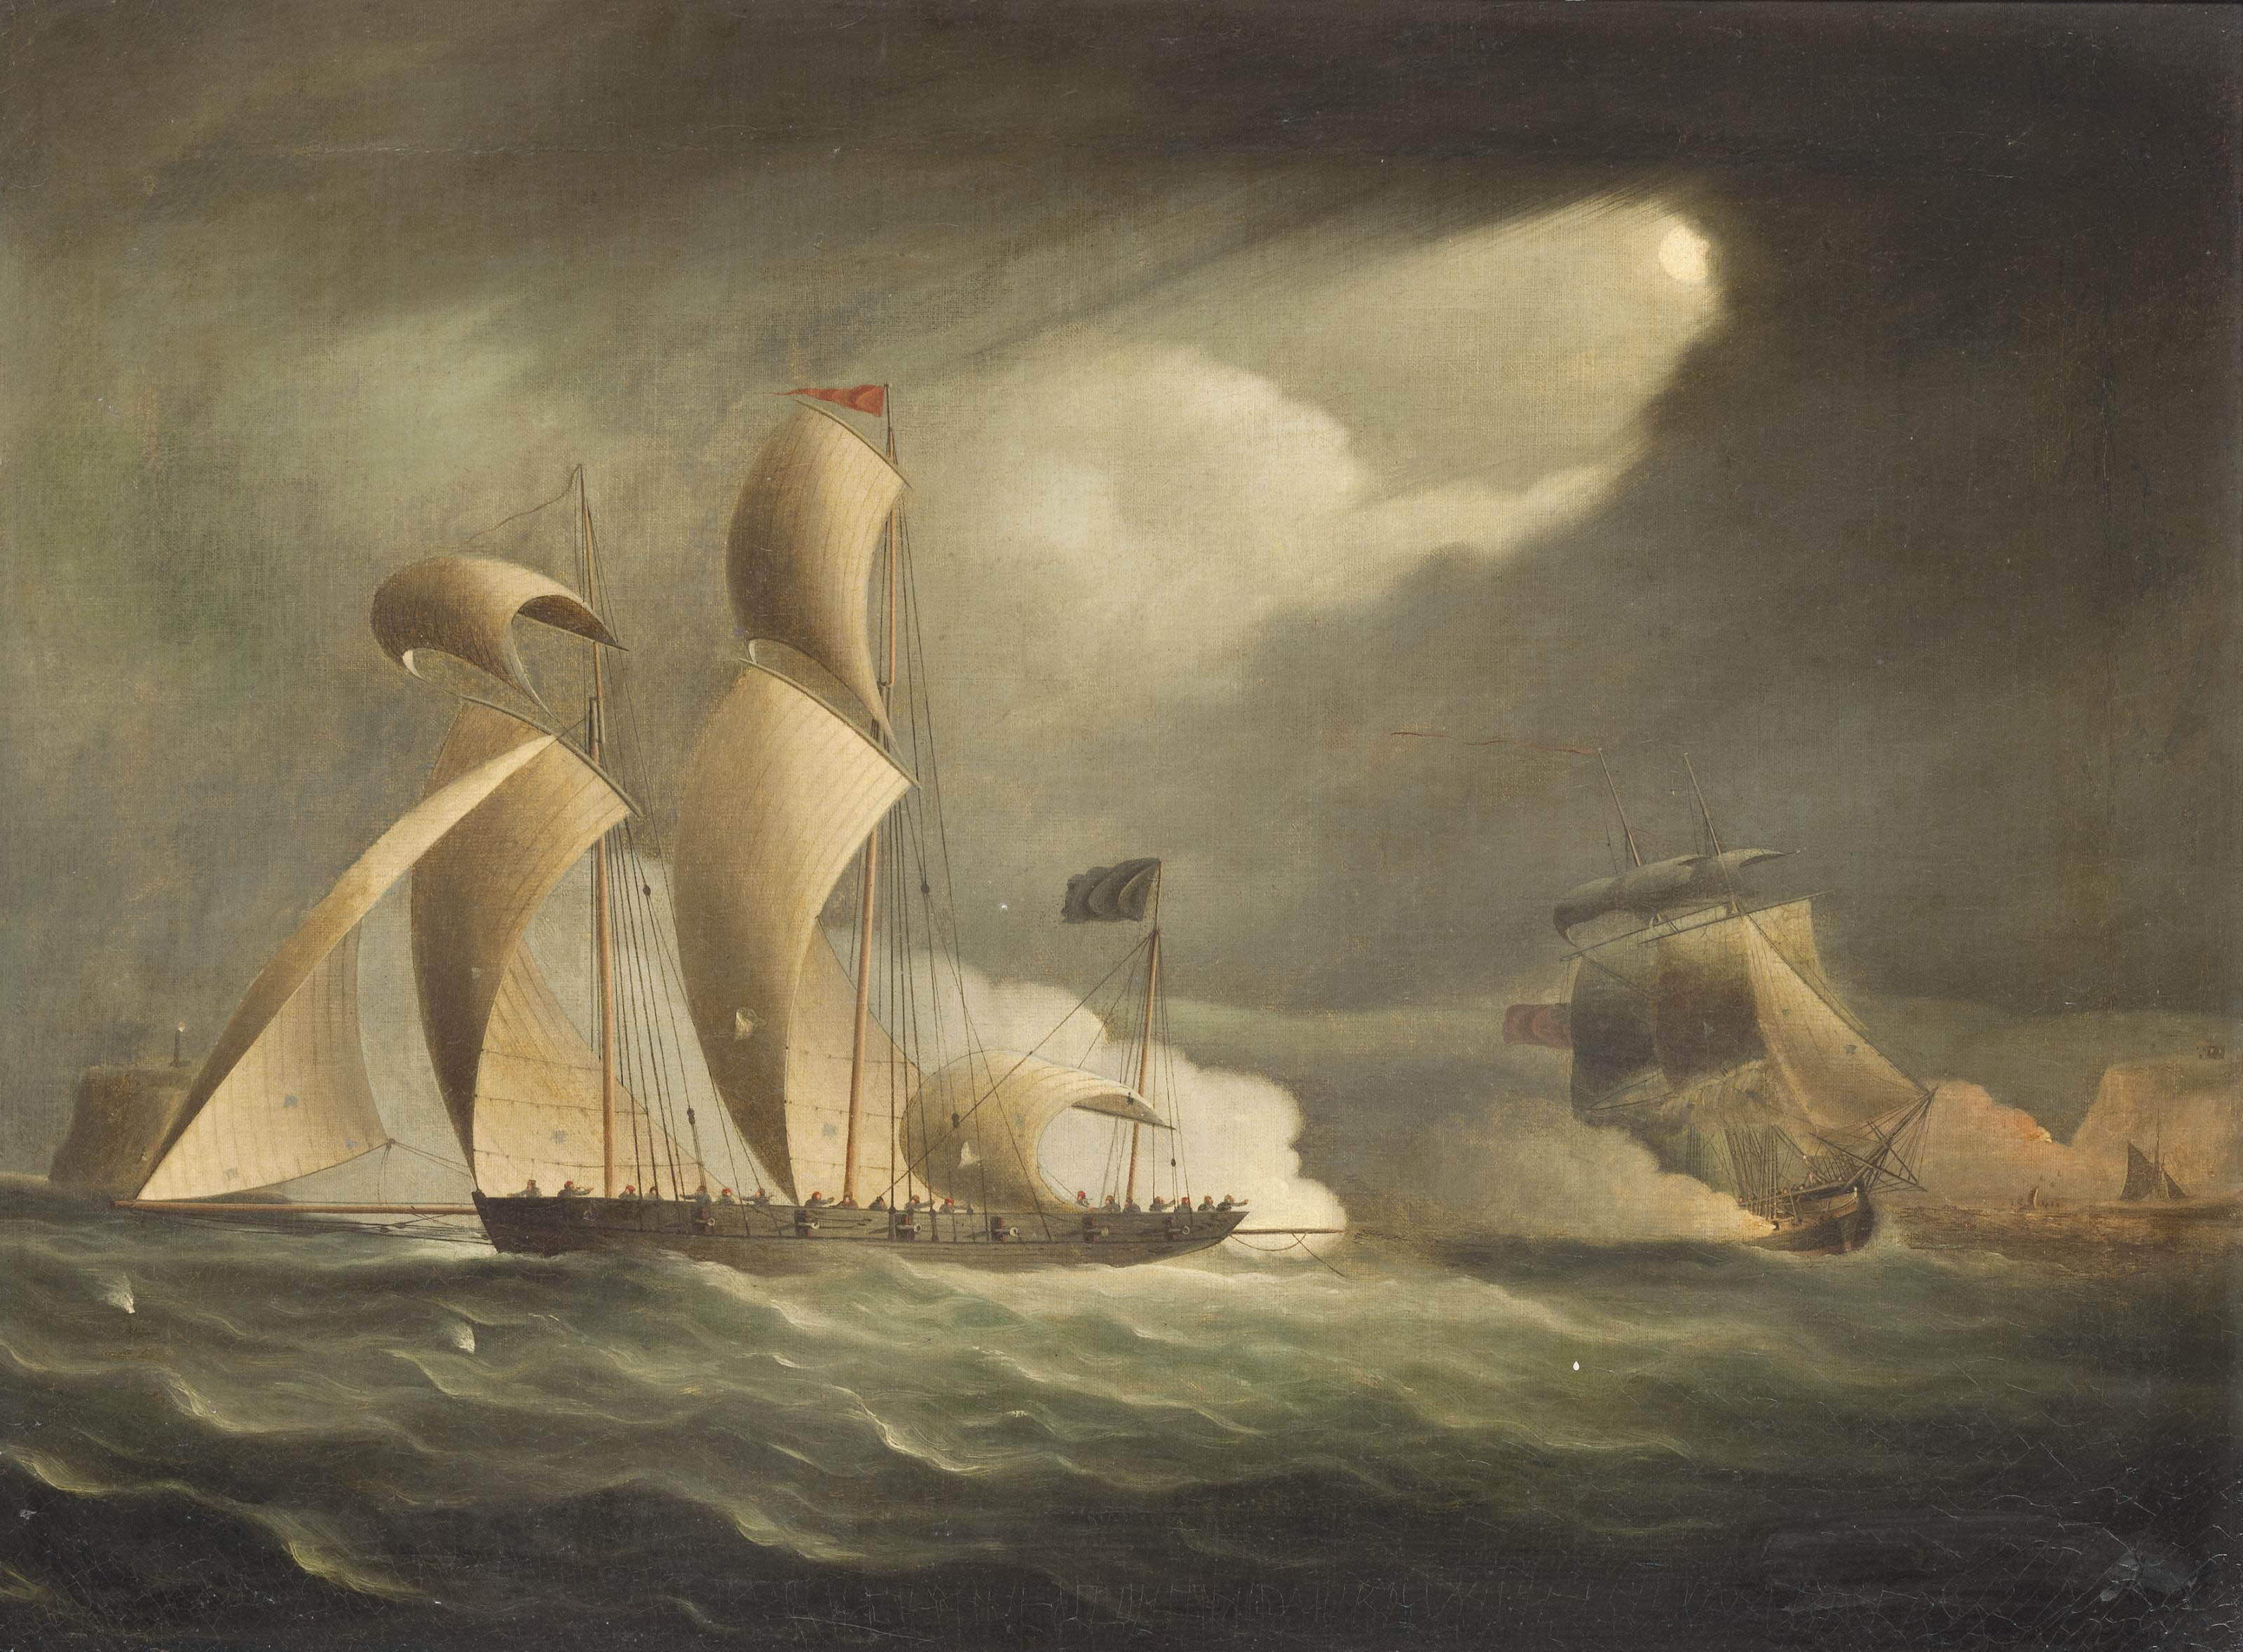 A Royal Navy frigate engaging and chasing a pirate lugger under the cover of darkness